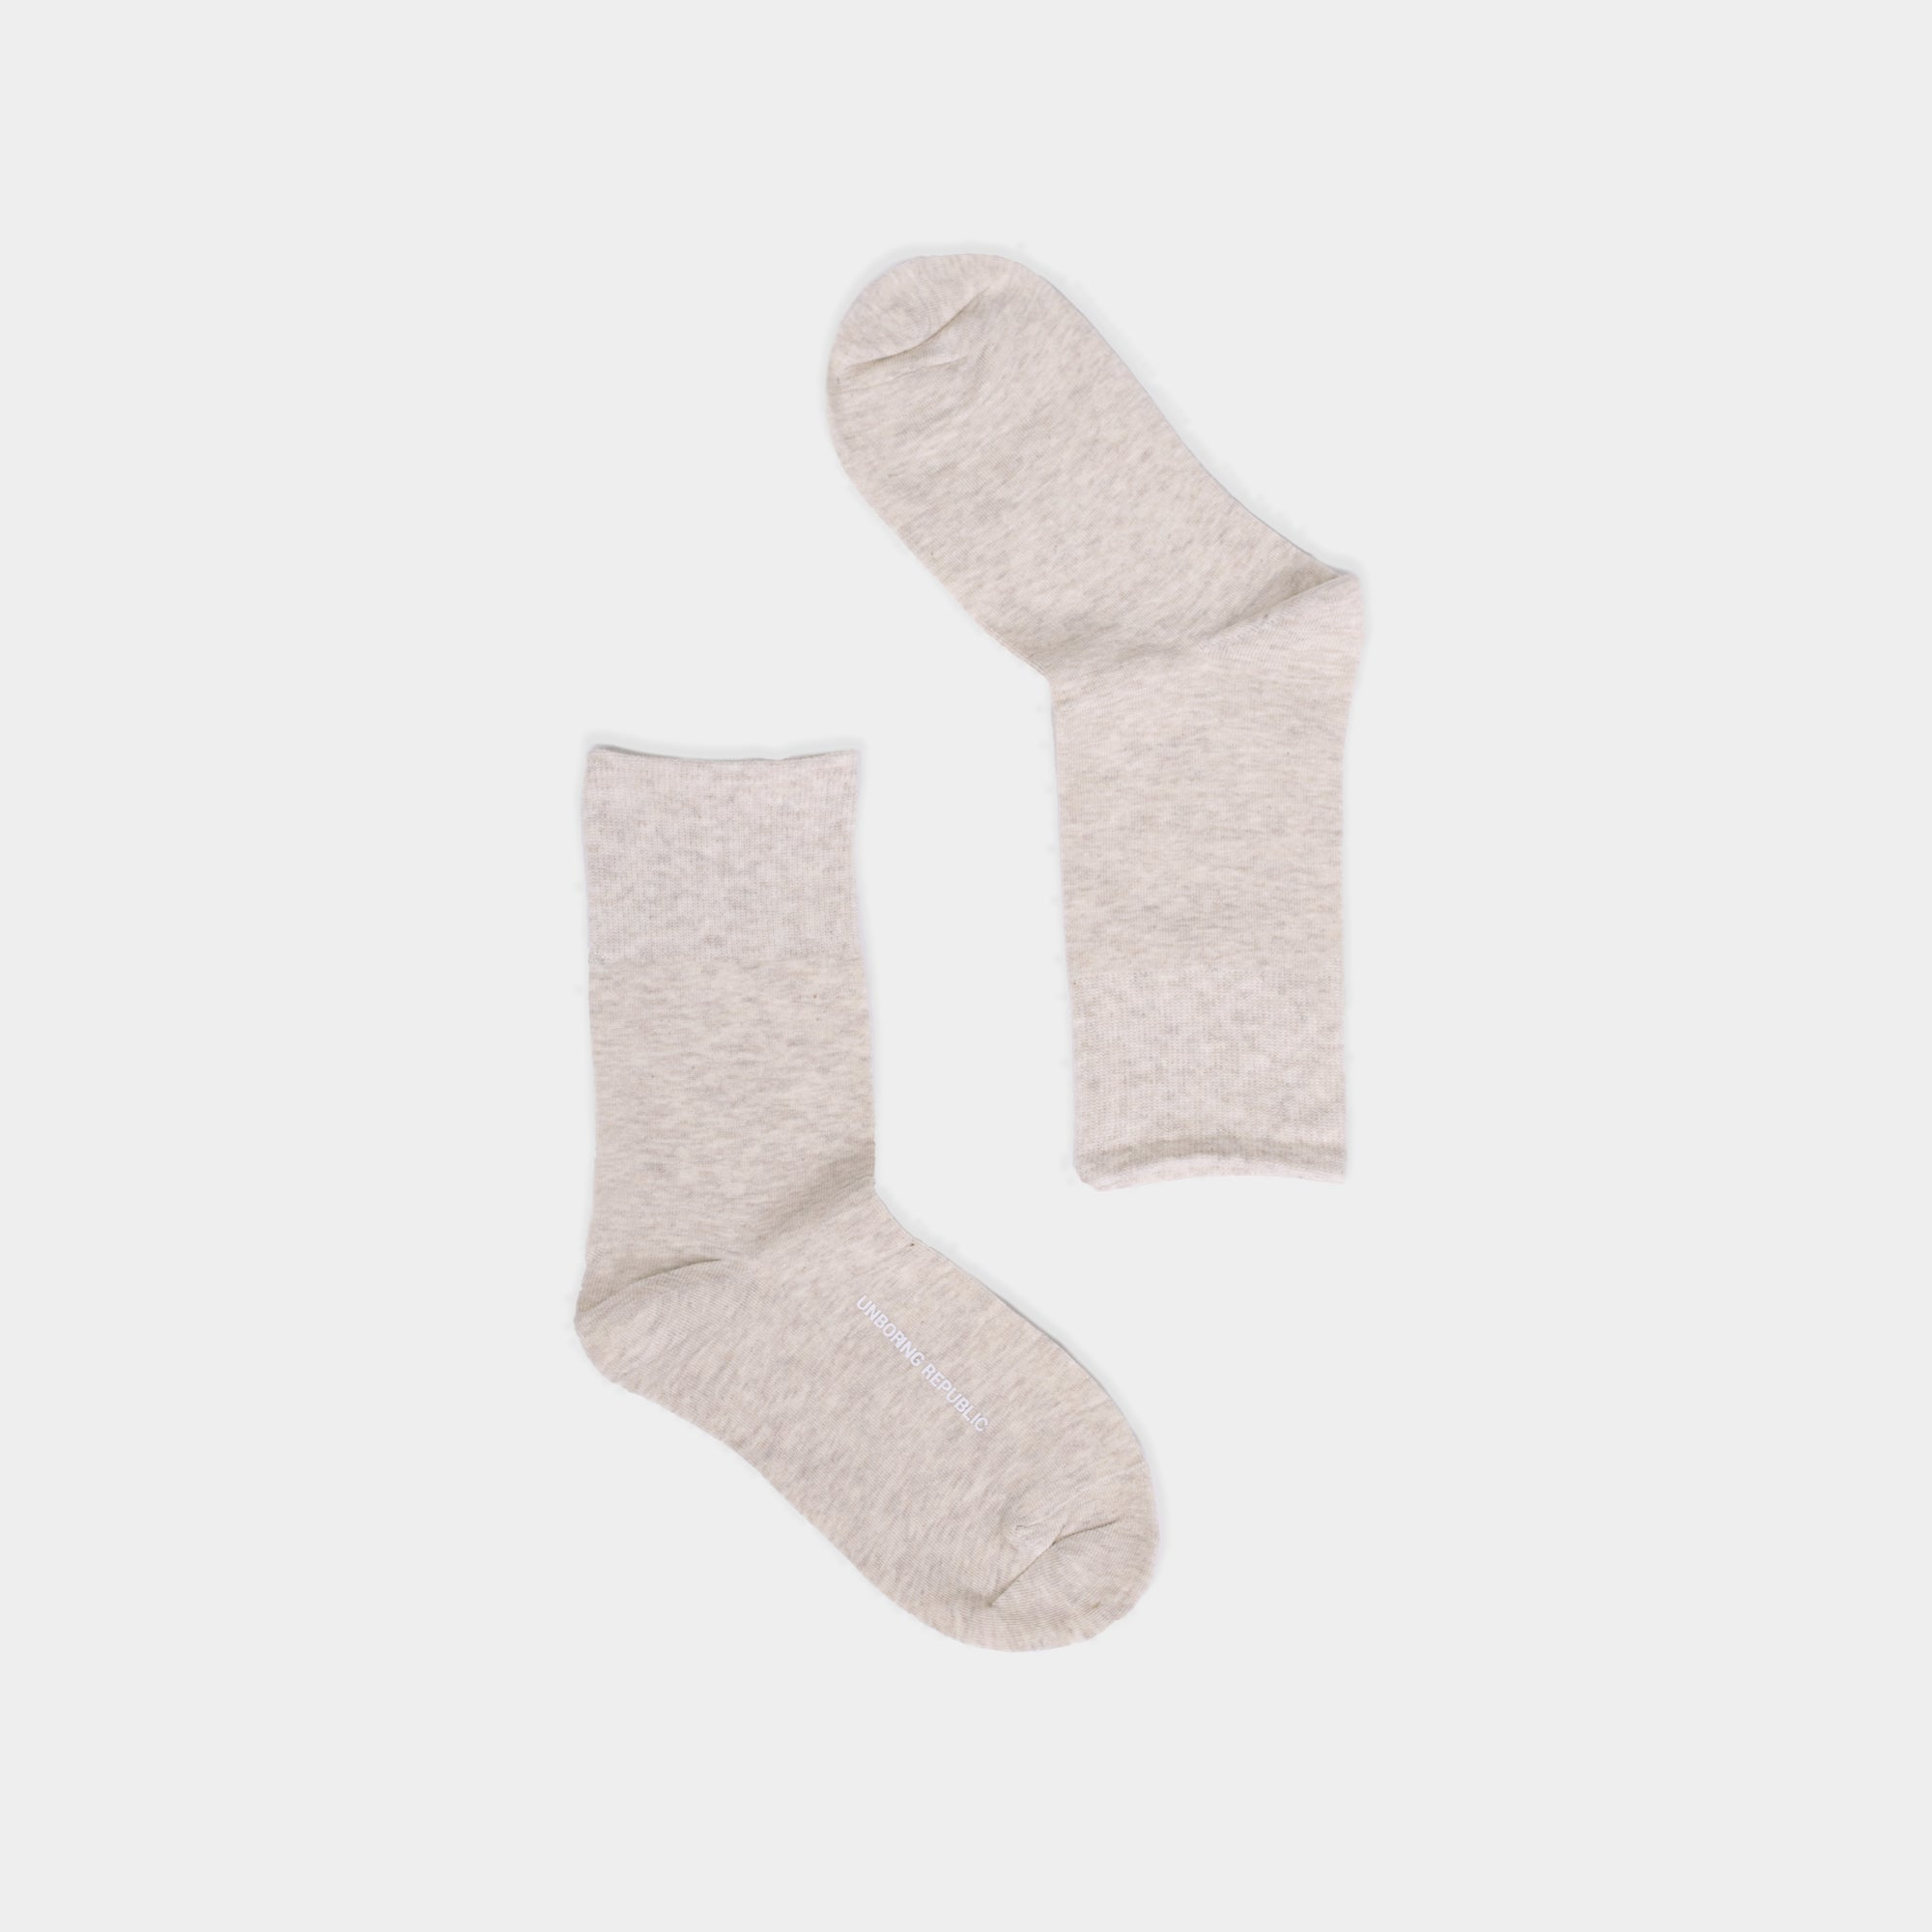 BASIC THIN BEIGE CREW SOCKS